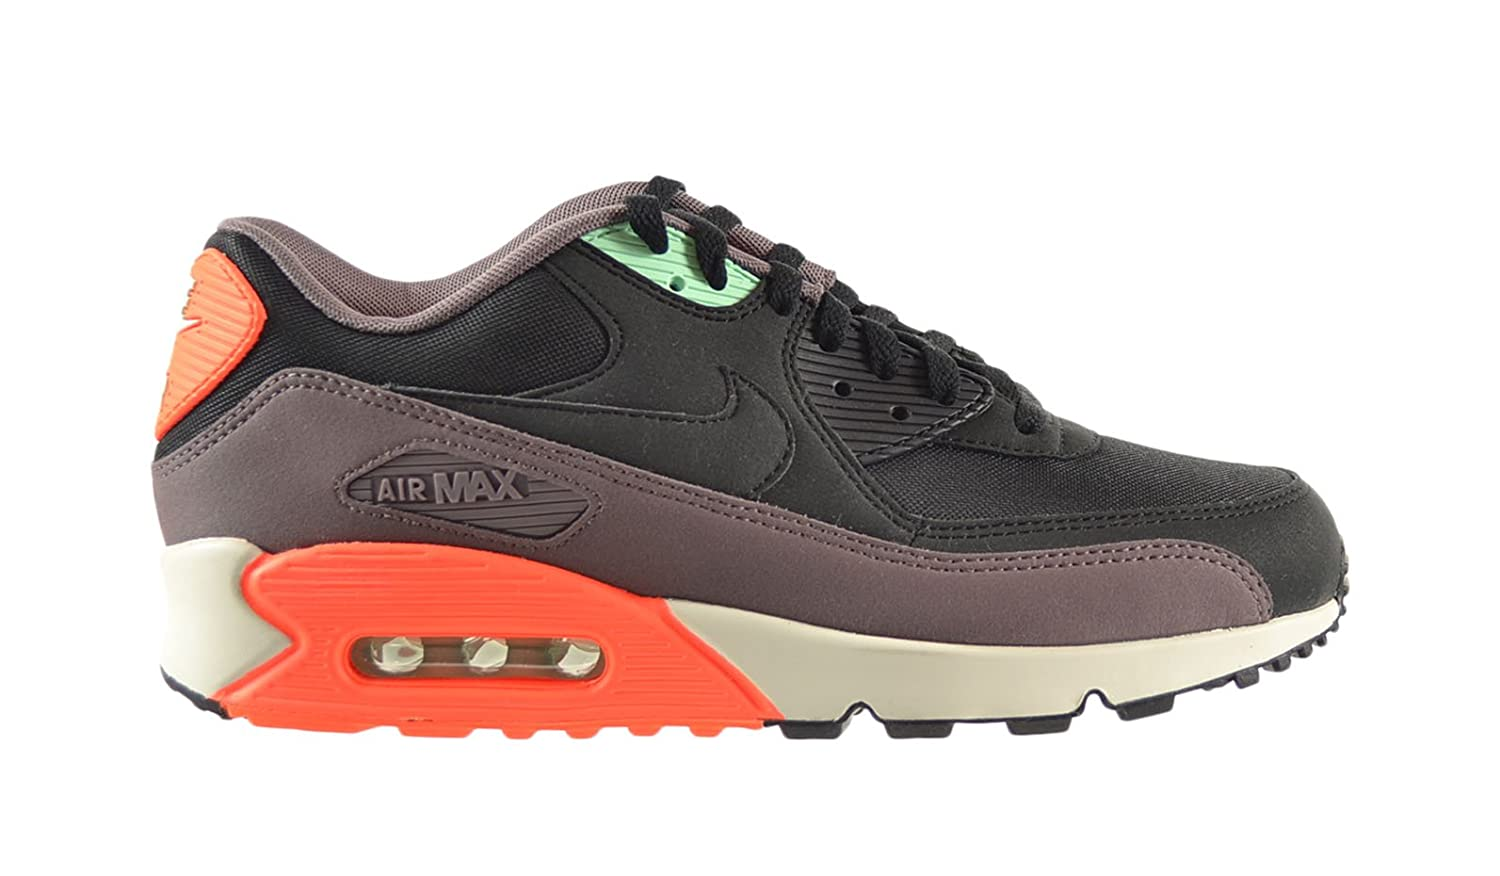 cheaper 540f1 cb6a5 Amazon.com   Nike Air Max 90 Essential Men s Sneaker   Fashion Sneakers